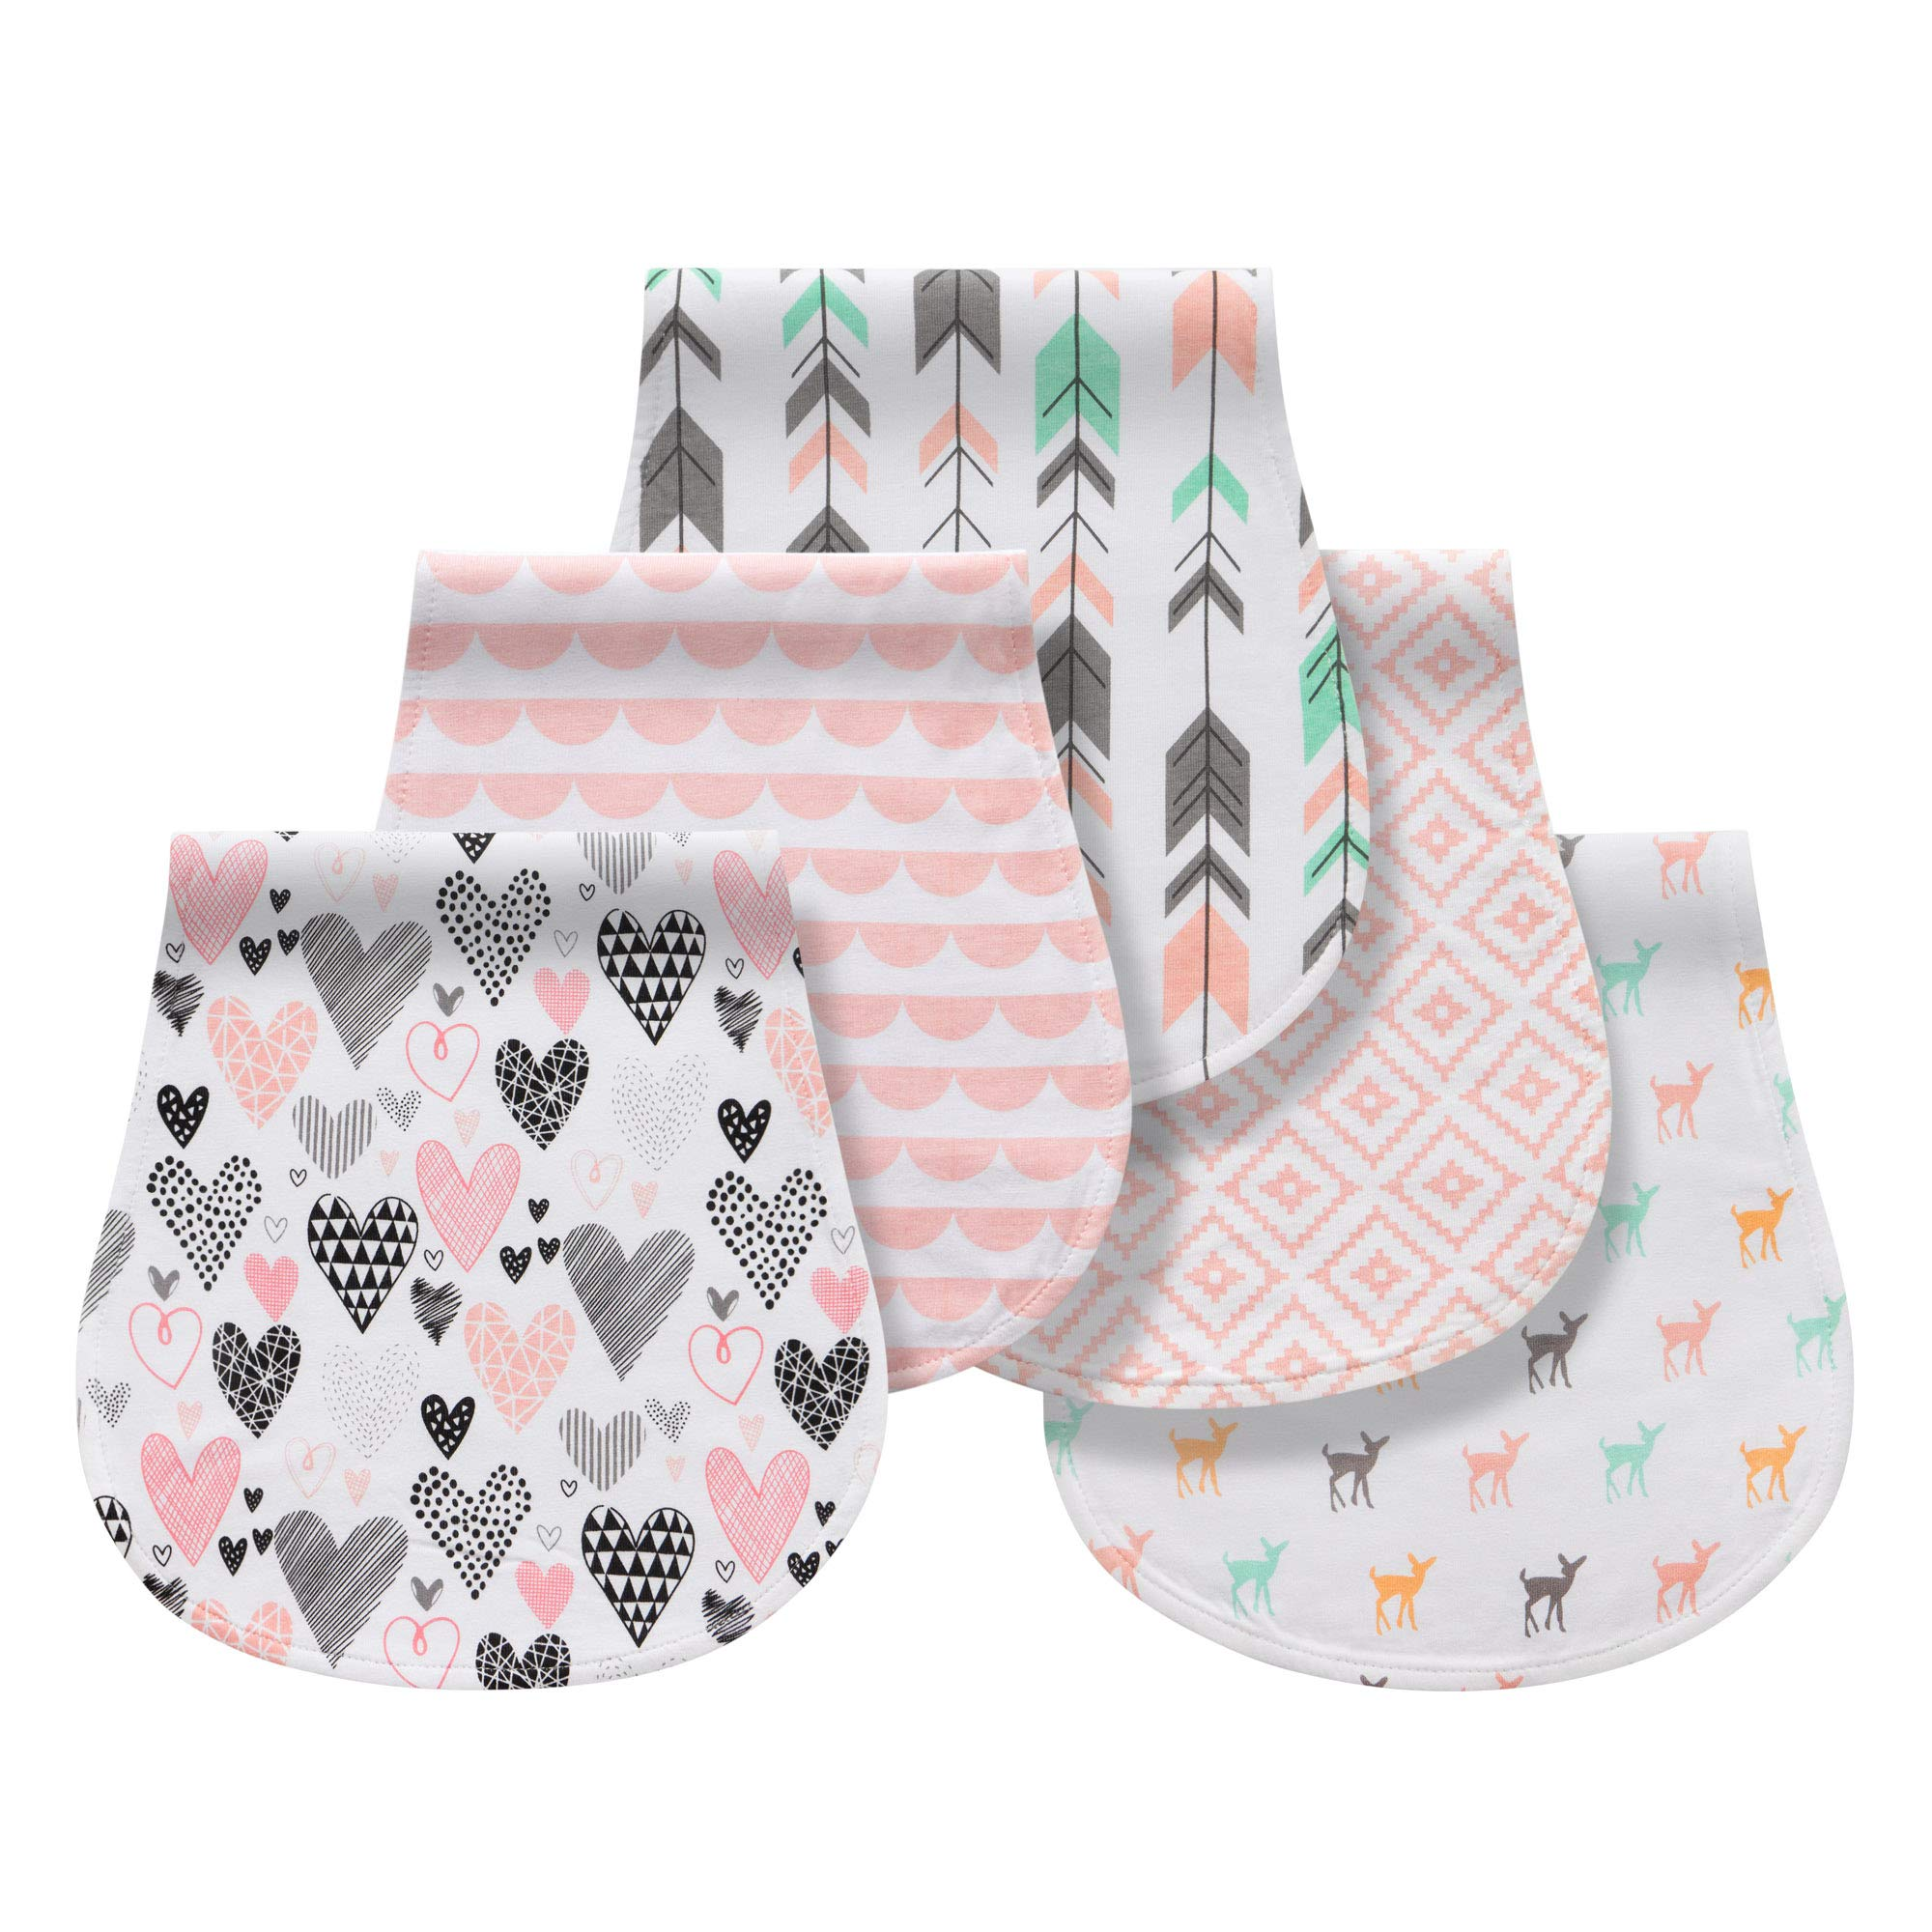 Burp Cloths for Baby Boy Girlfor Newborns, 100% Cotton Triple Layer Extra Soft & Absorbent Multi-UseInfant Burping Towels (Pink) by Queness